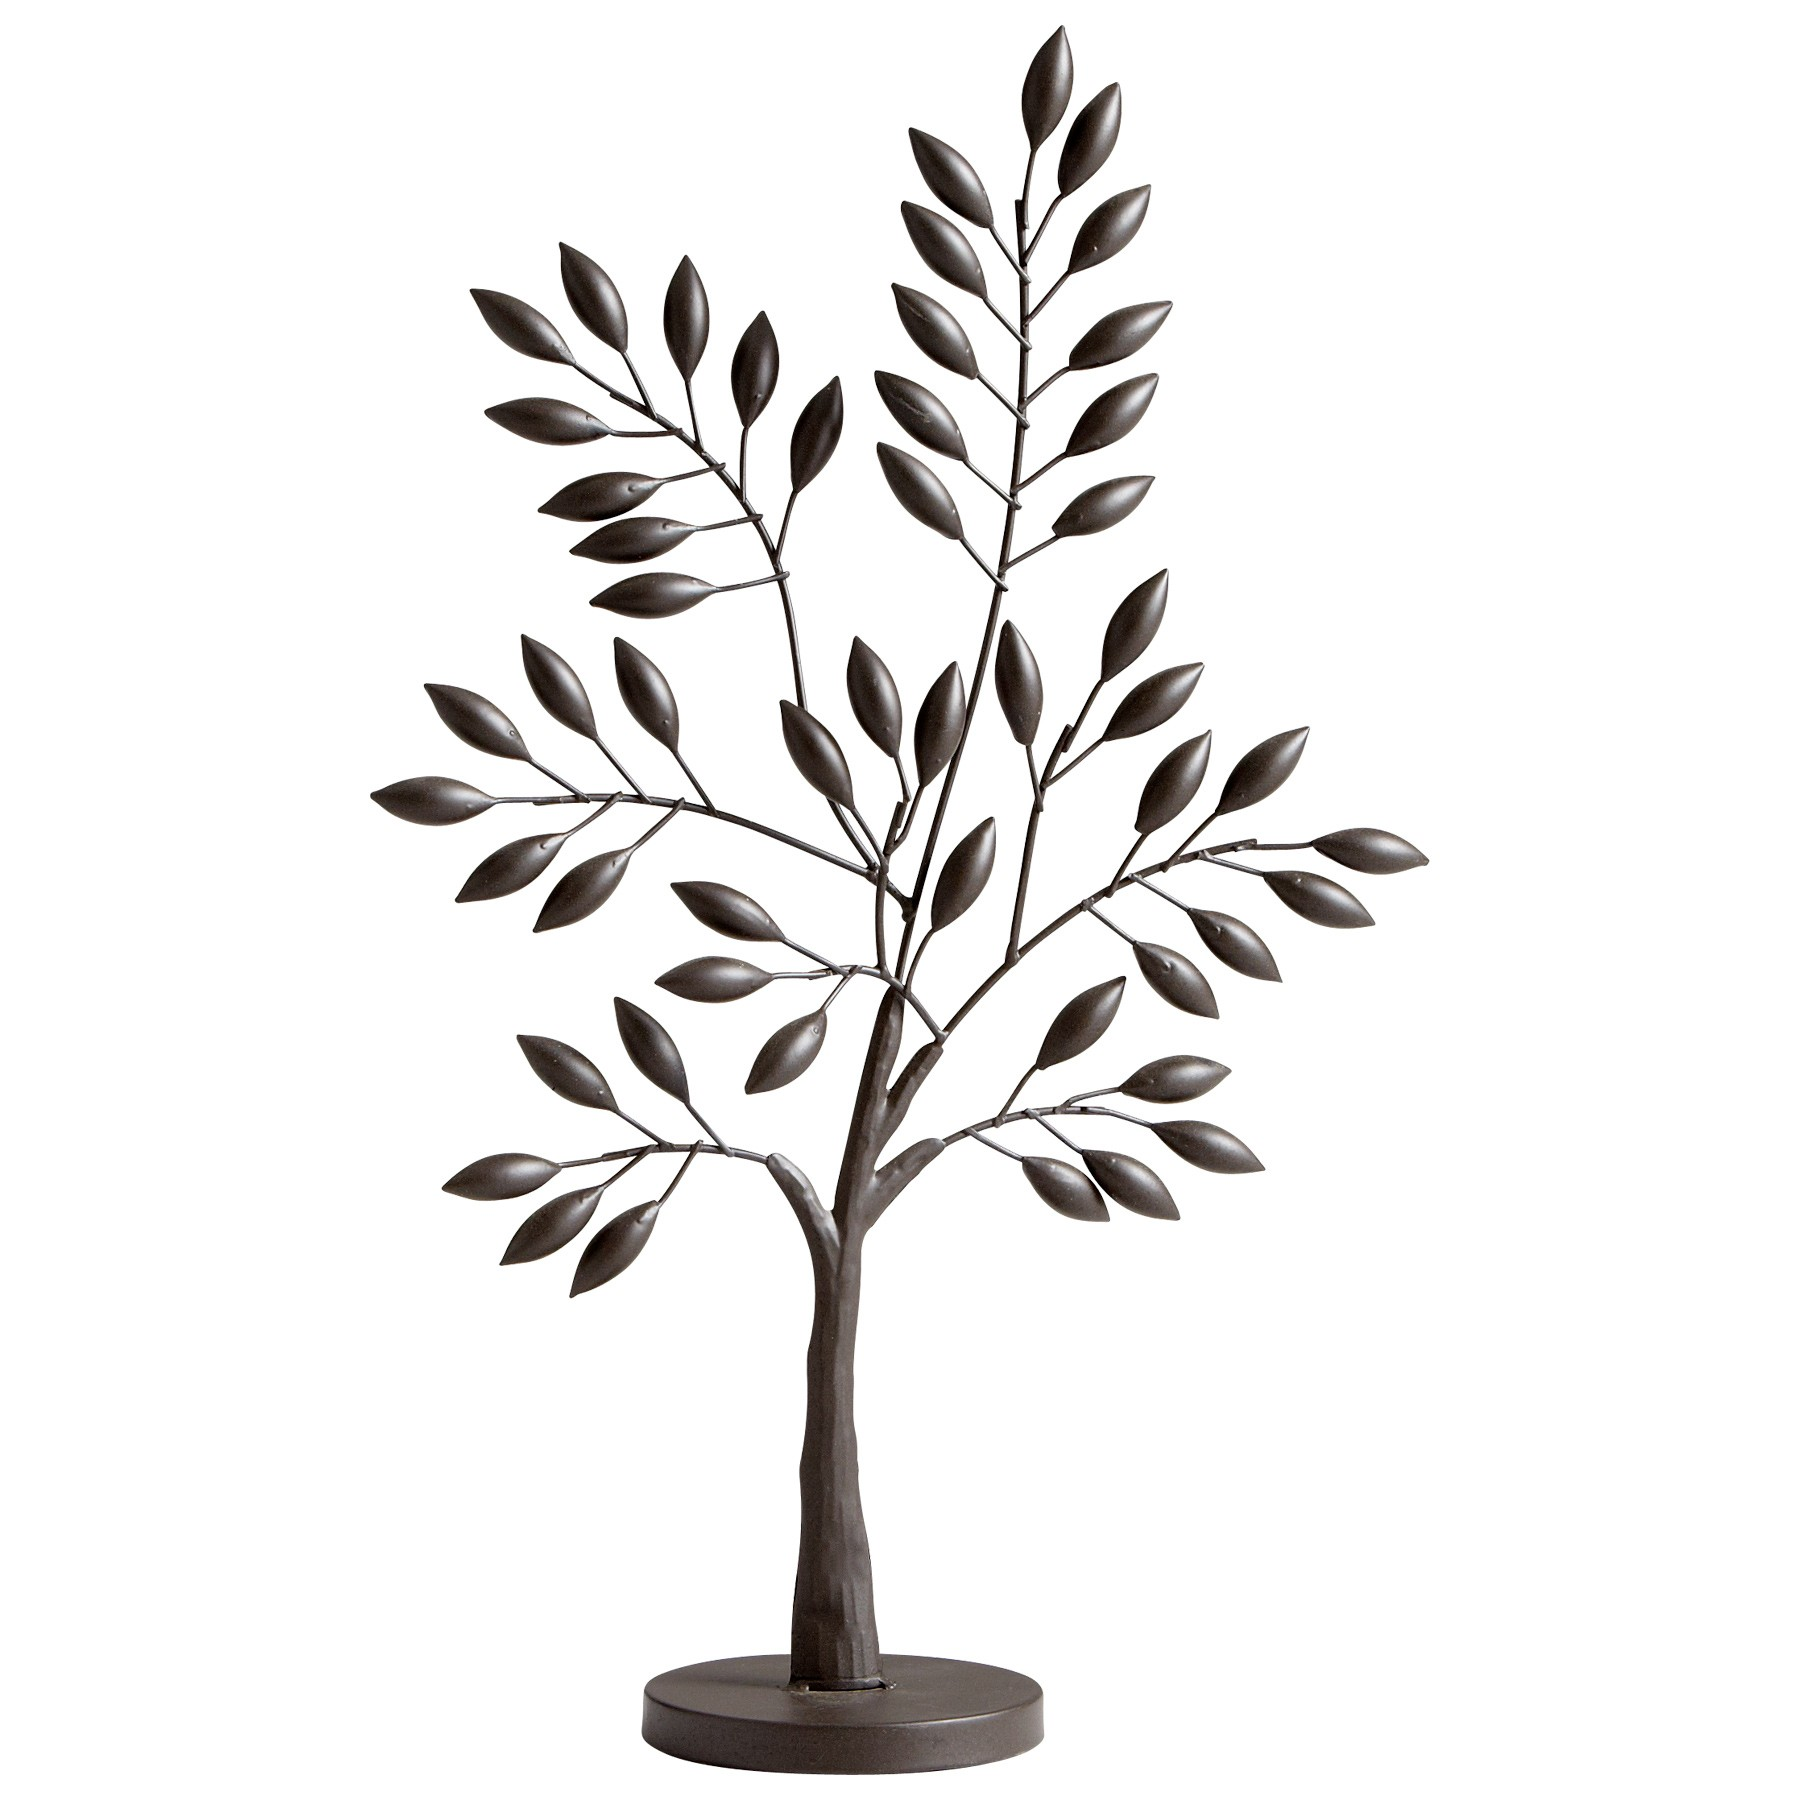 Smaller tree clipart black and white.